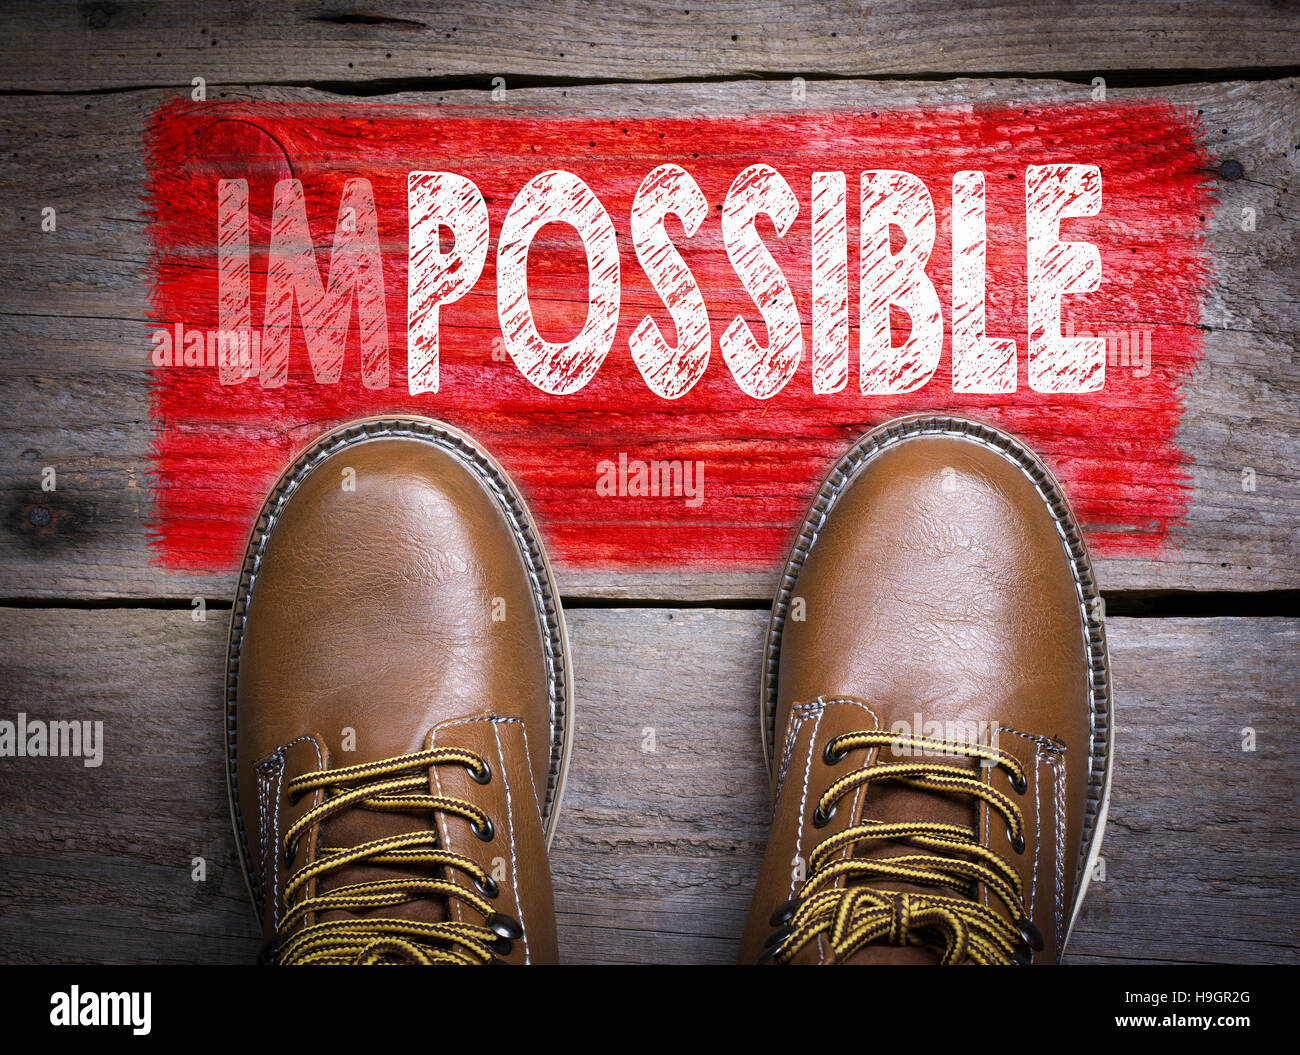 Impossible - Possible. Top View of Boot on wooden background - Stock Image